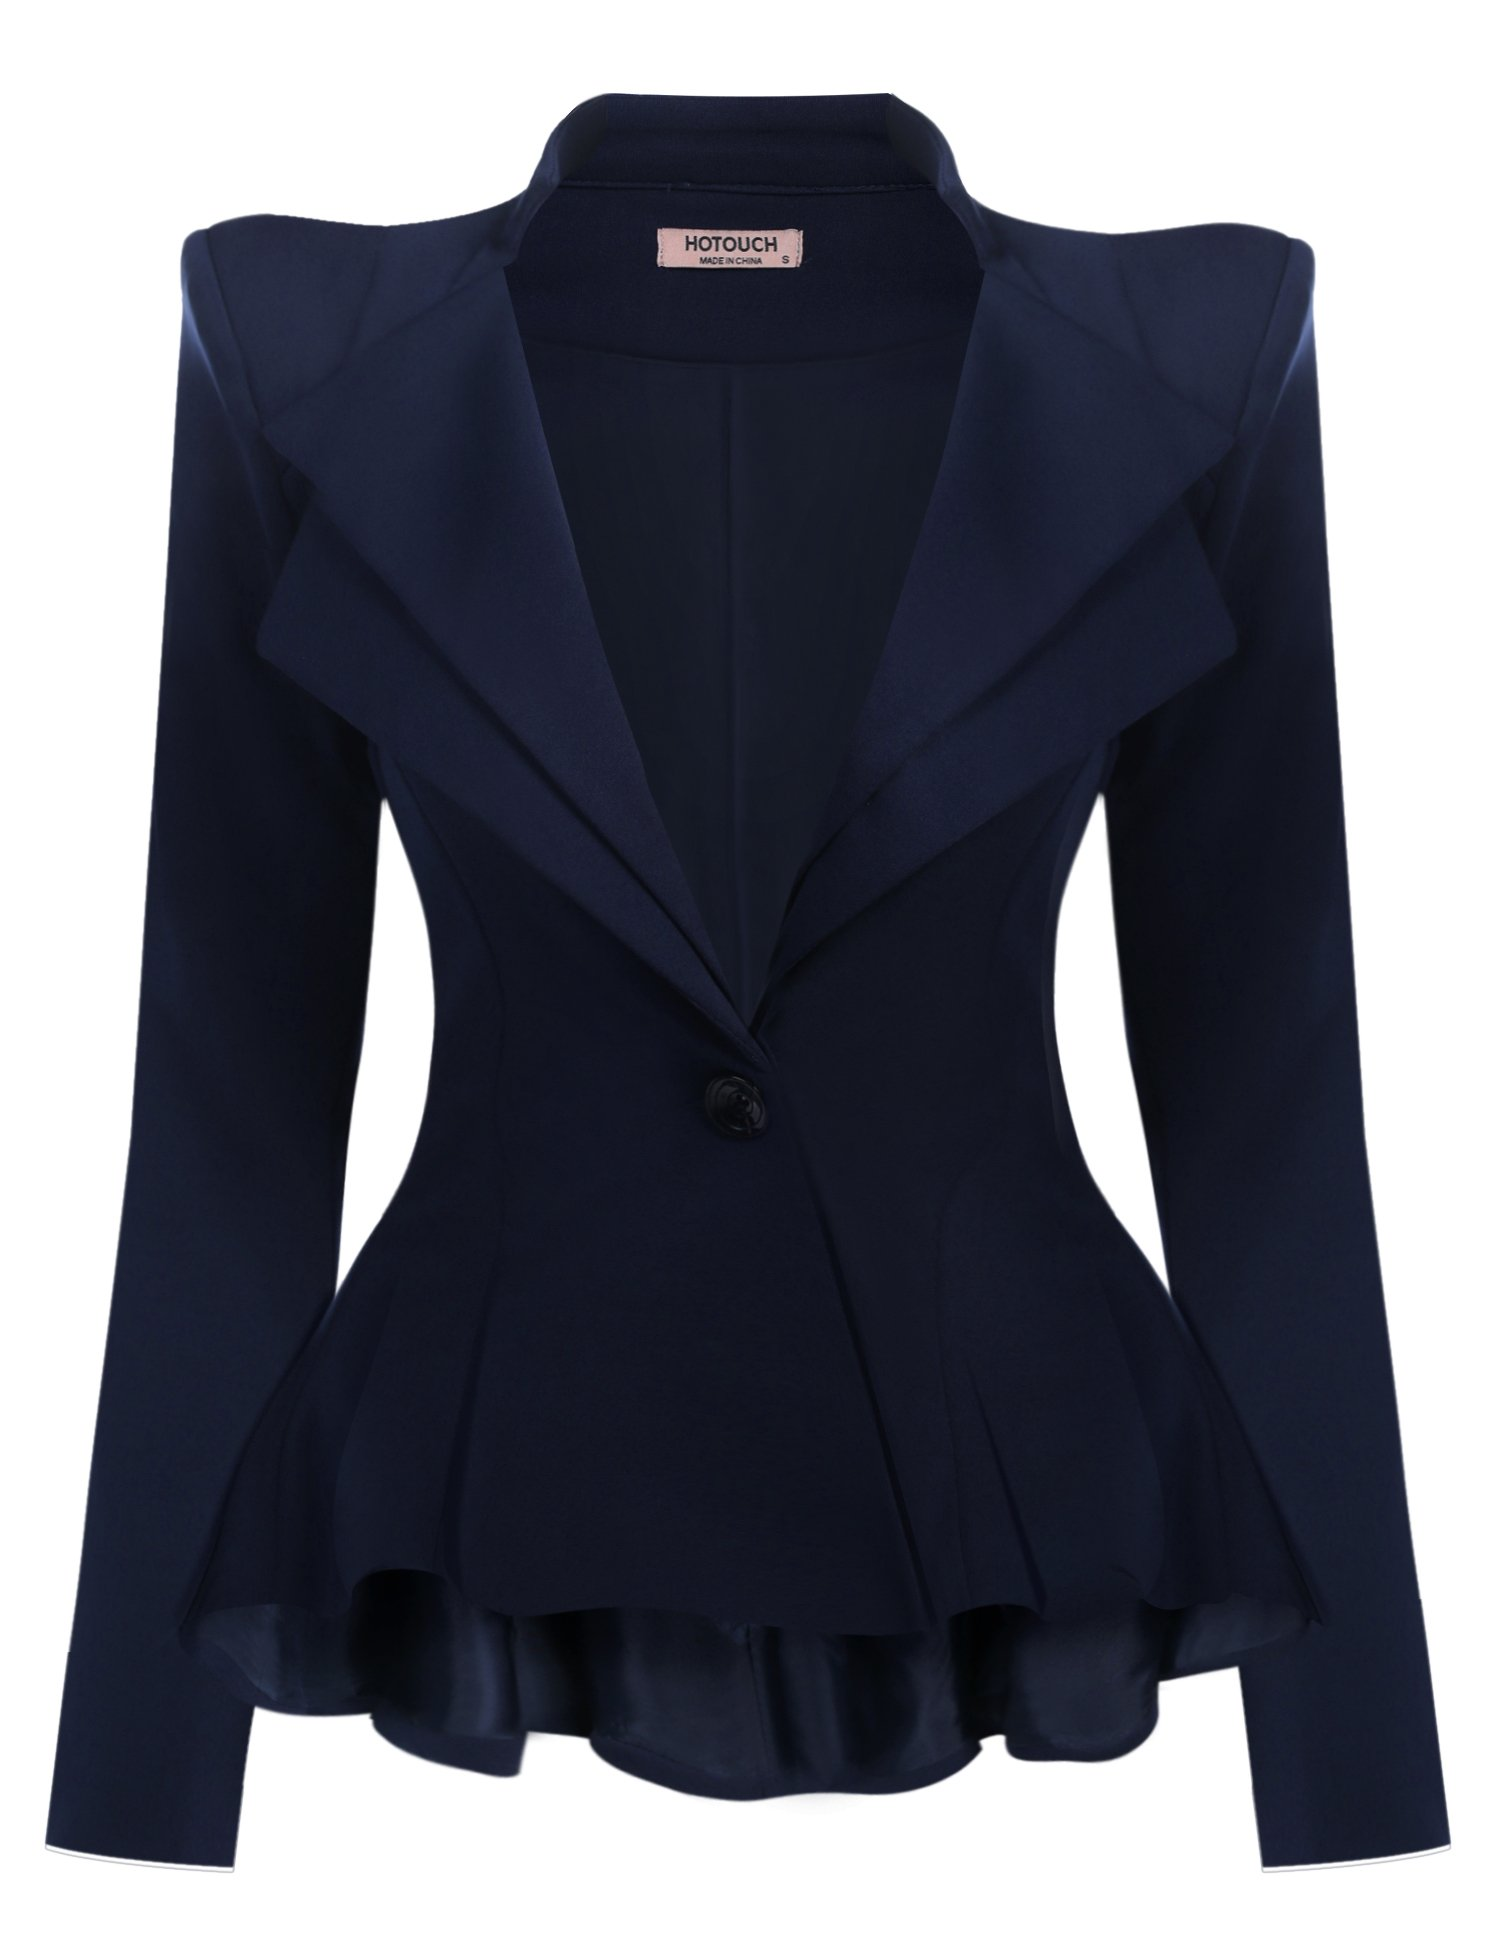 Hotouch Women's Fashion Office Single Button Double Fit Flare Blazer Jacket Navy Blue S